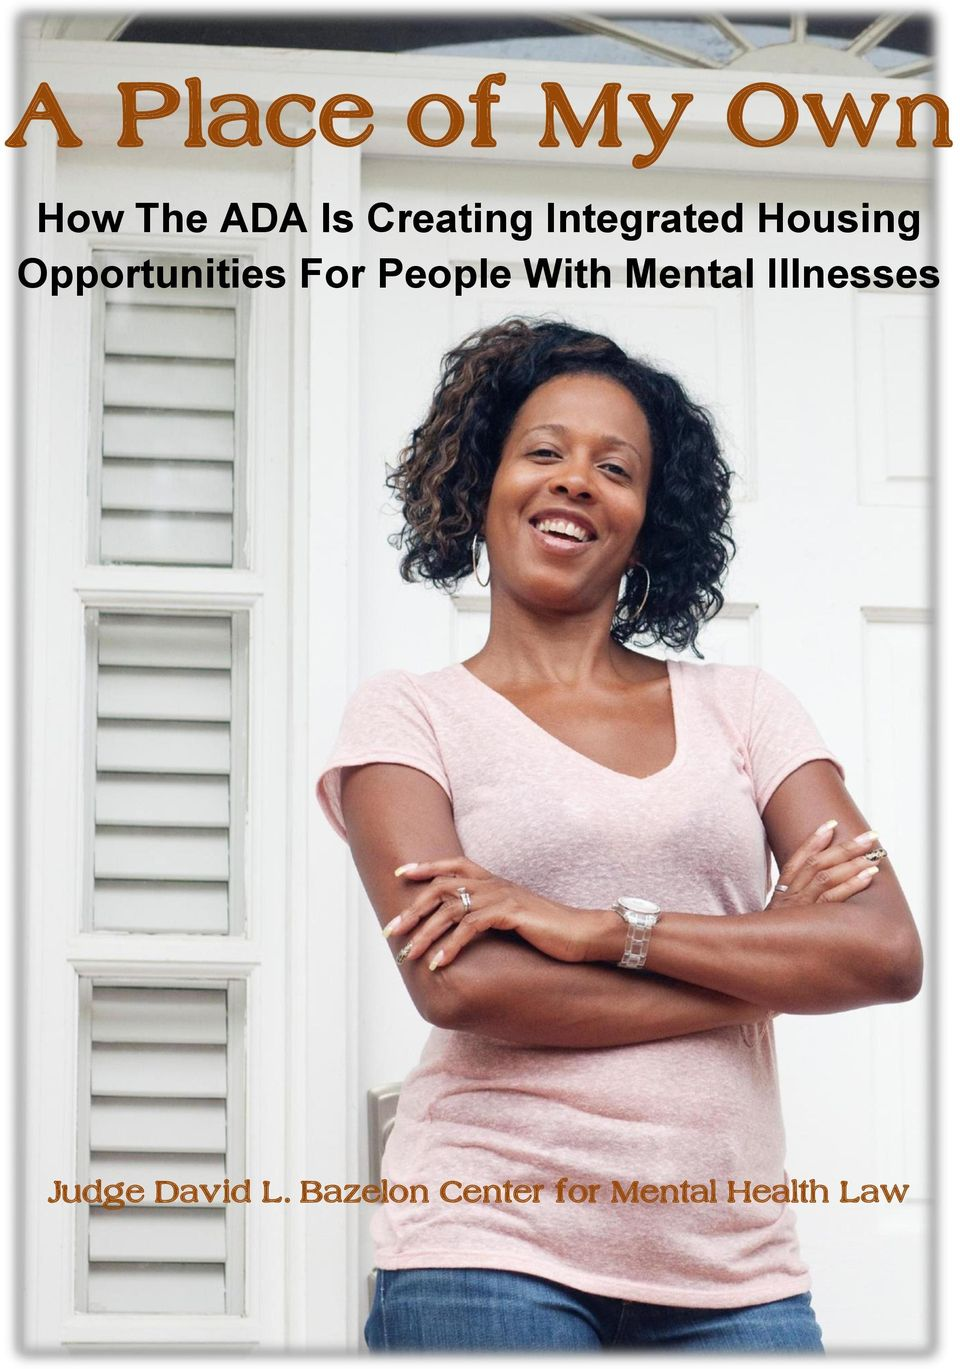 Opportunities For People With Mental